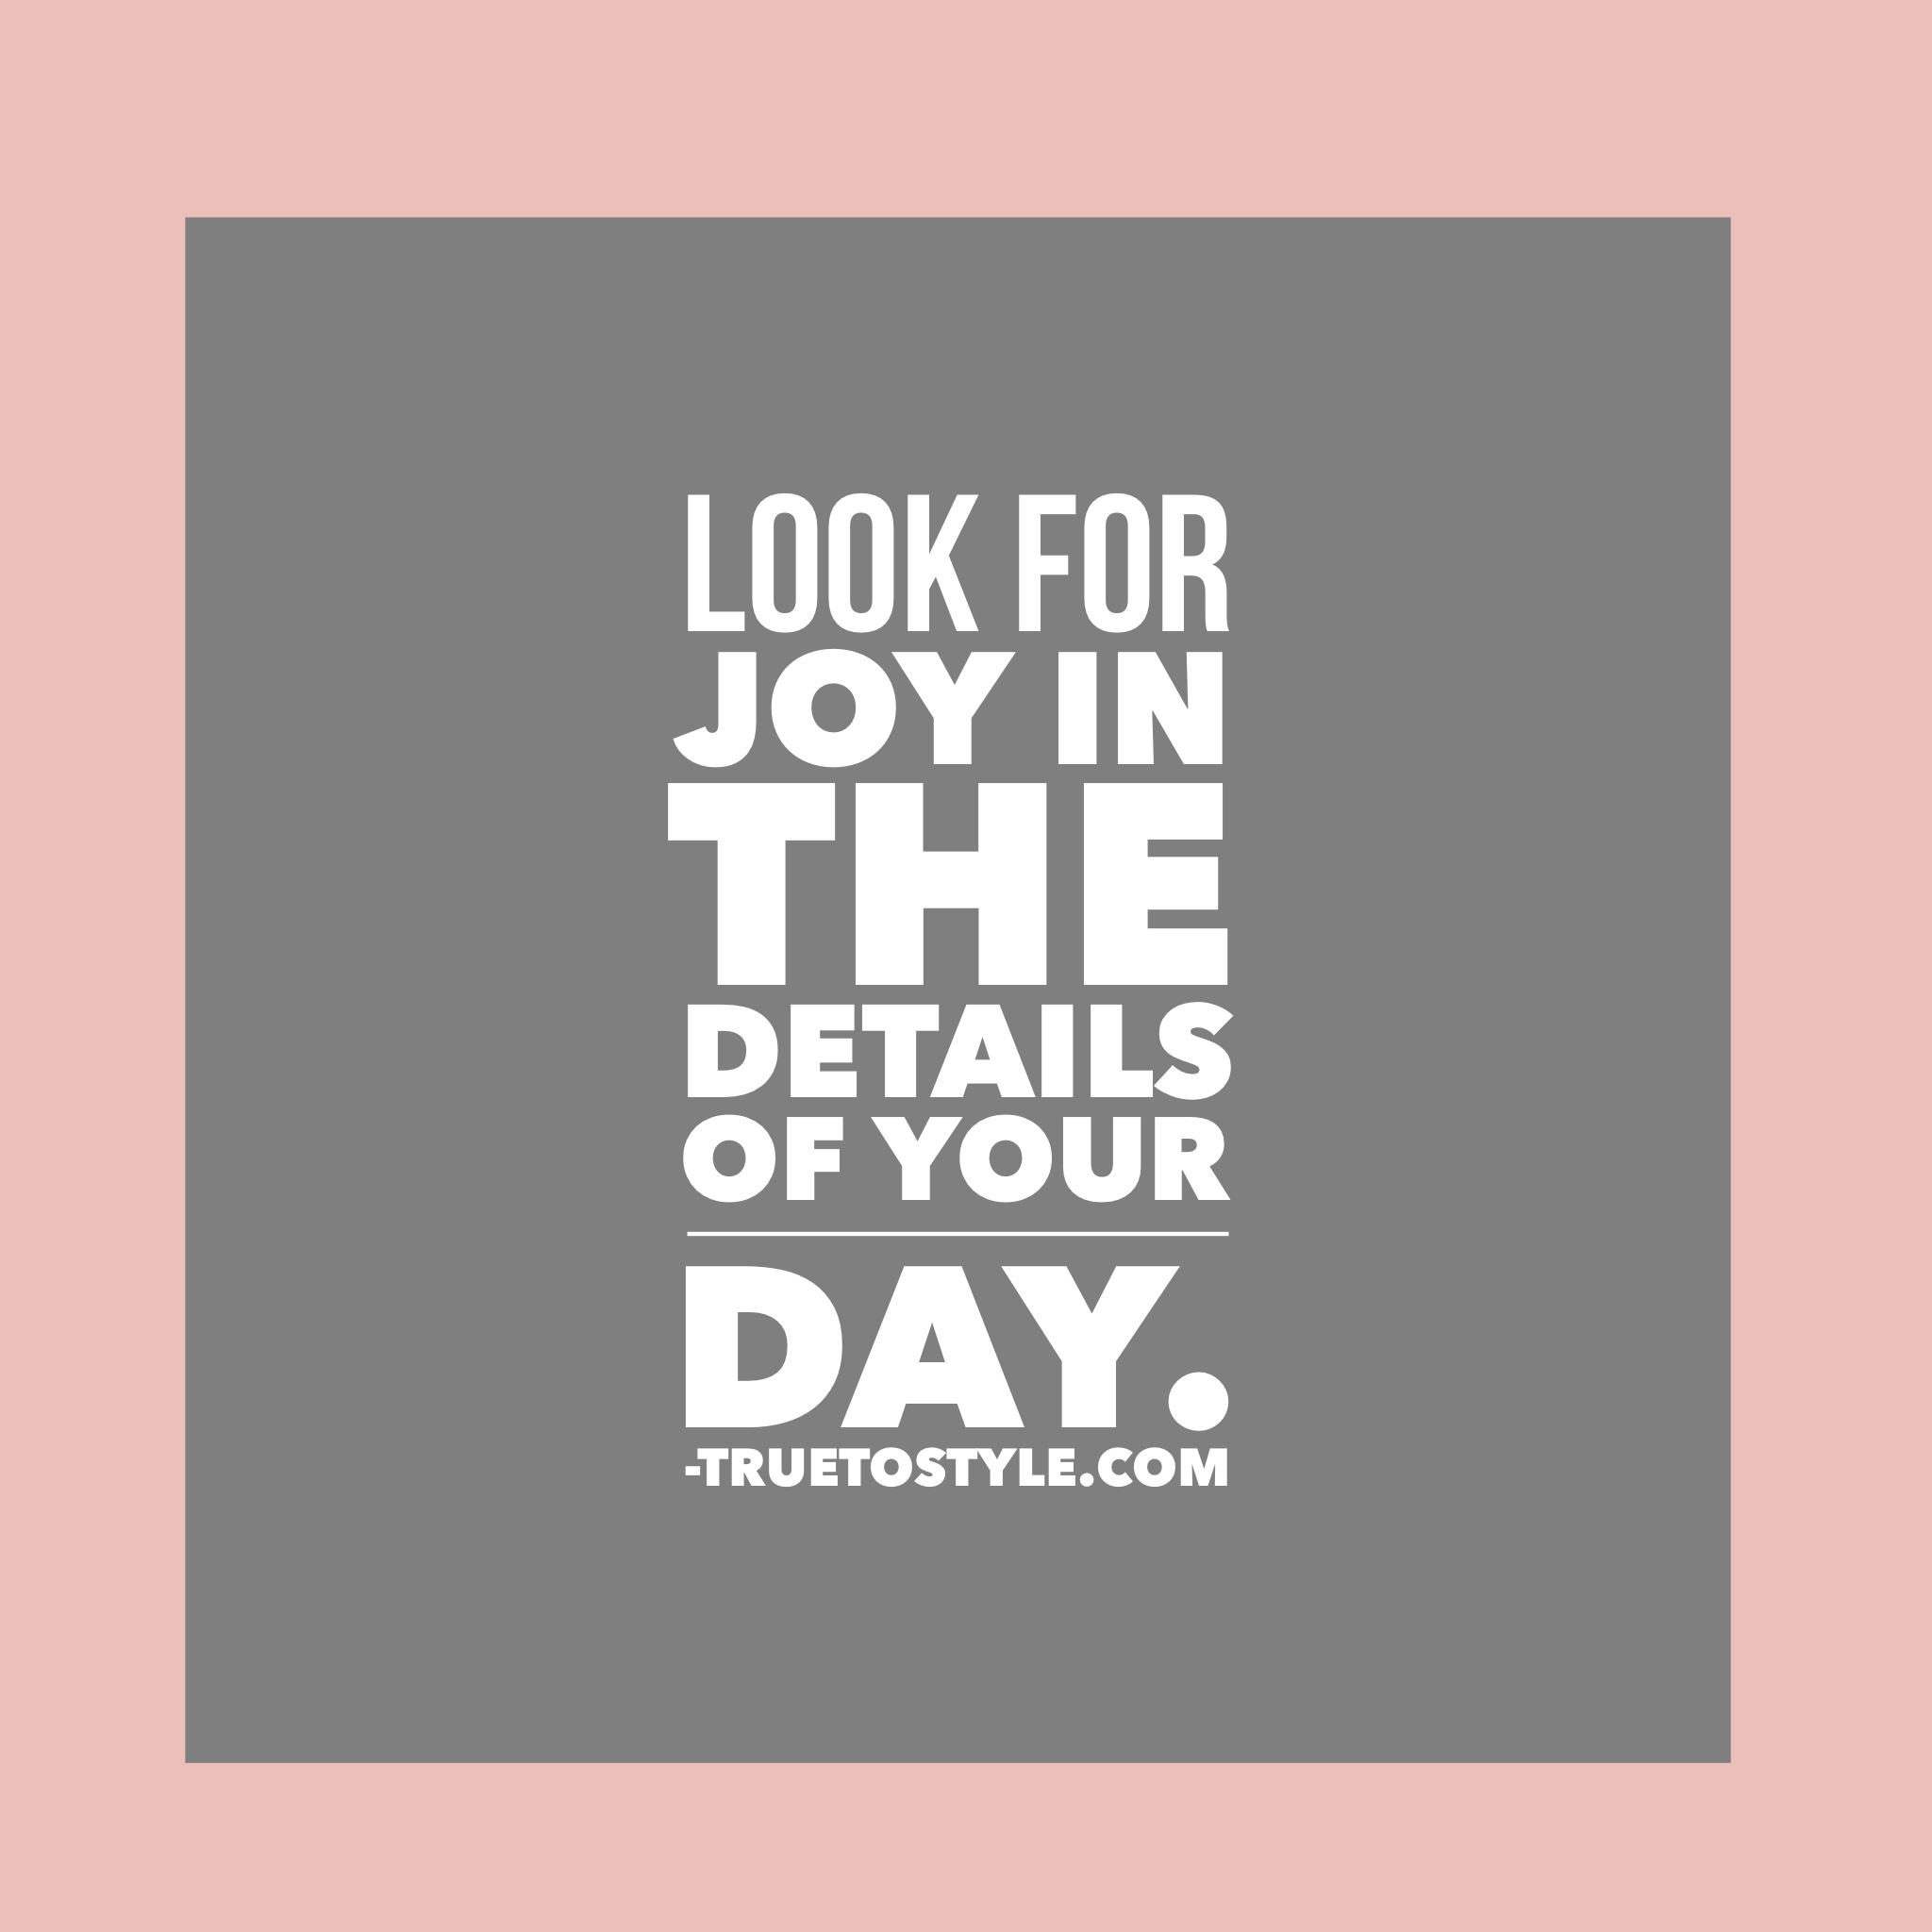 Look for Joy in the Details